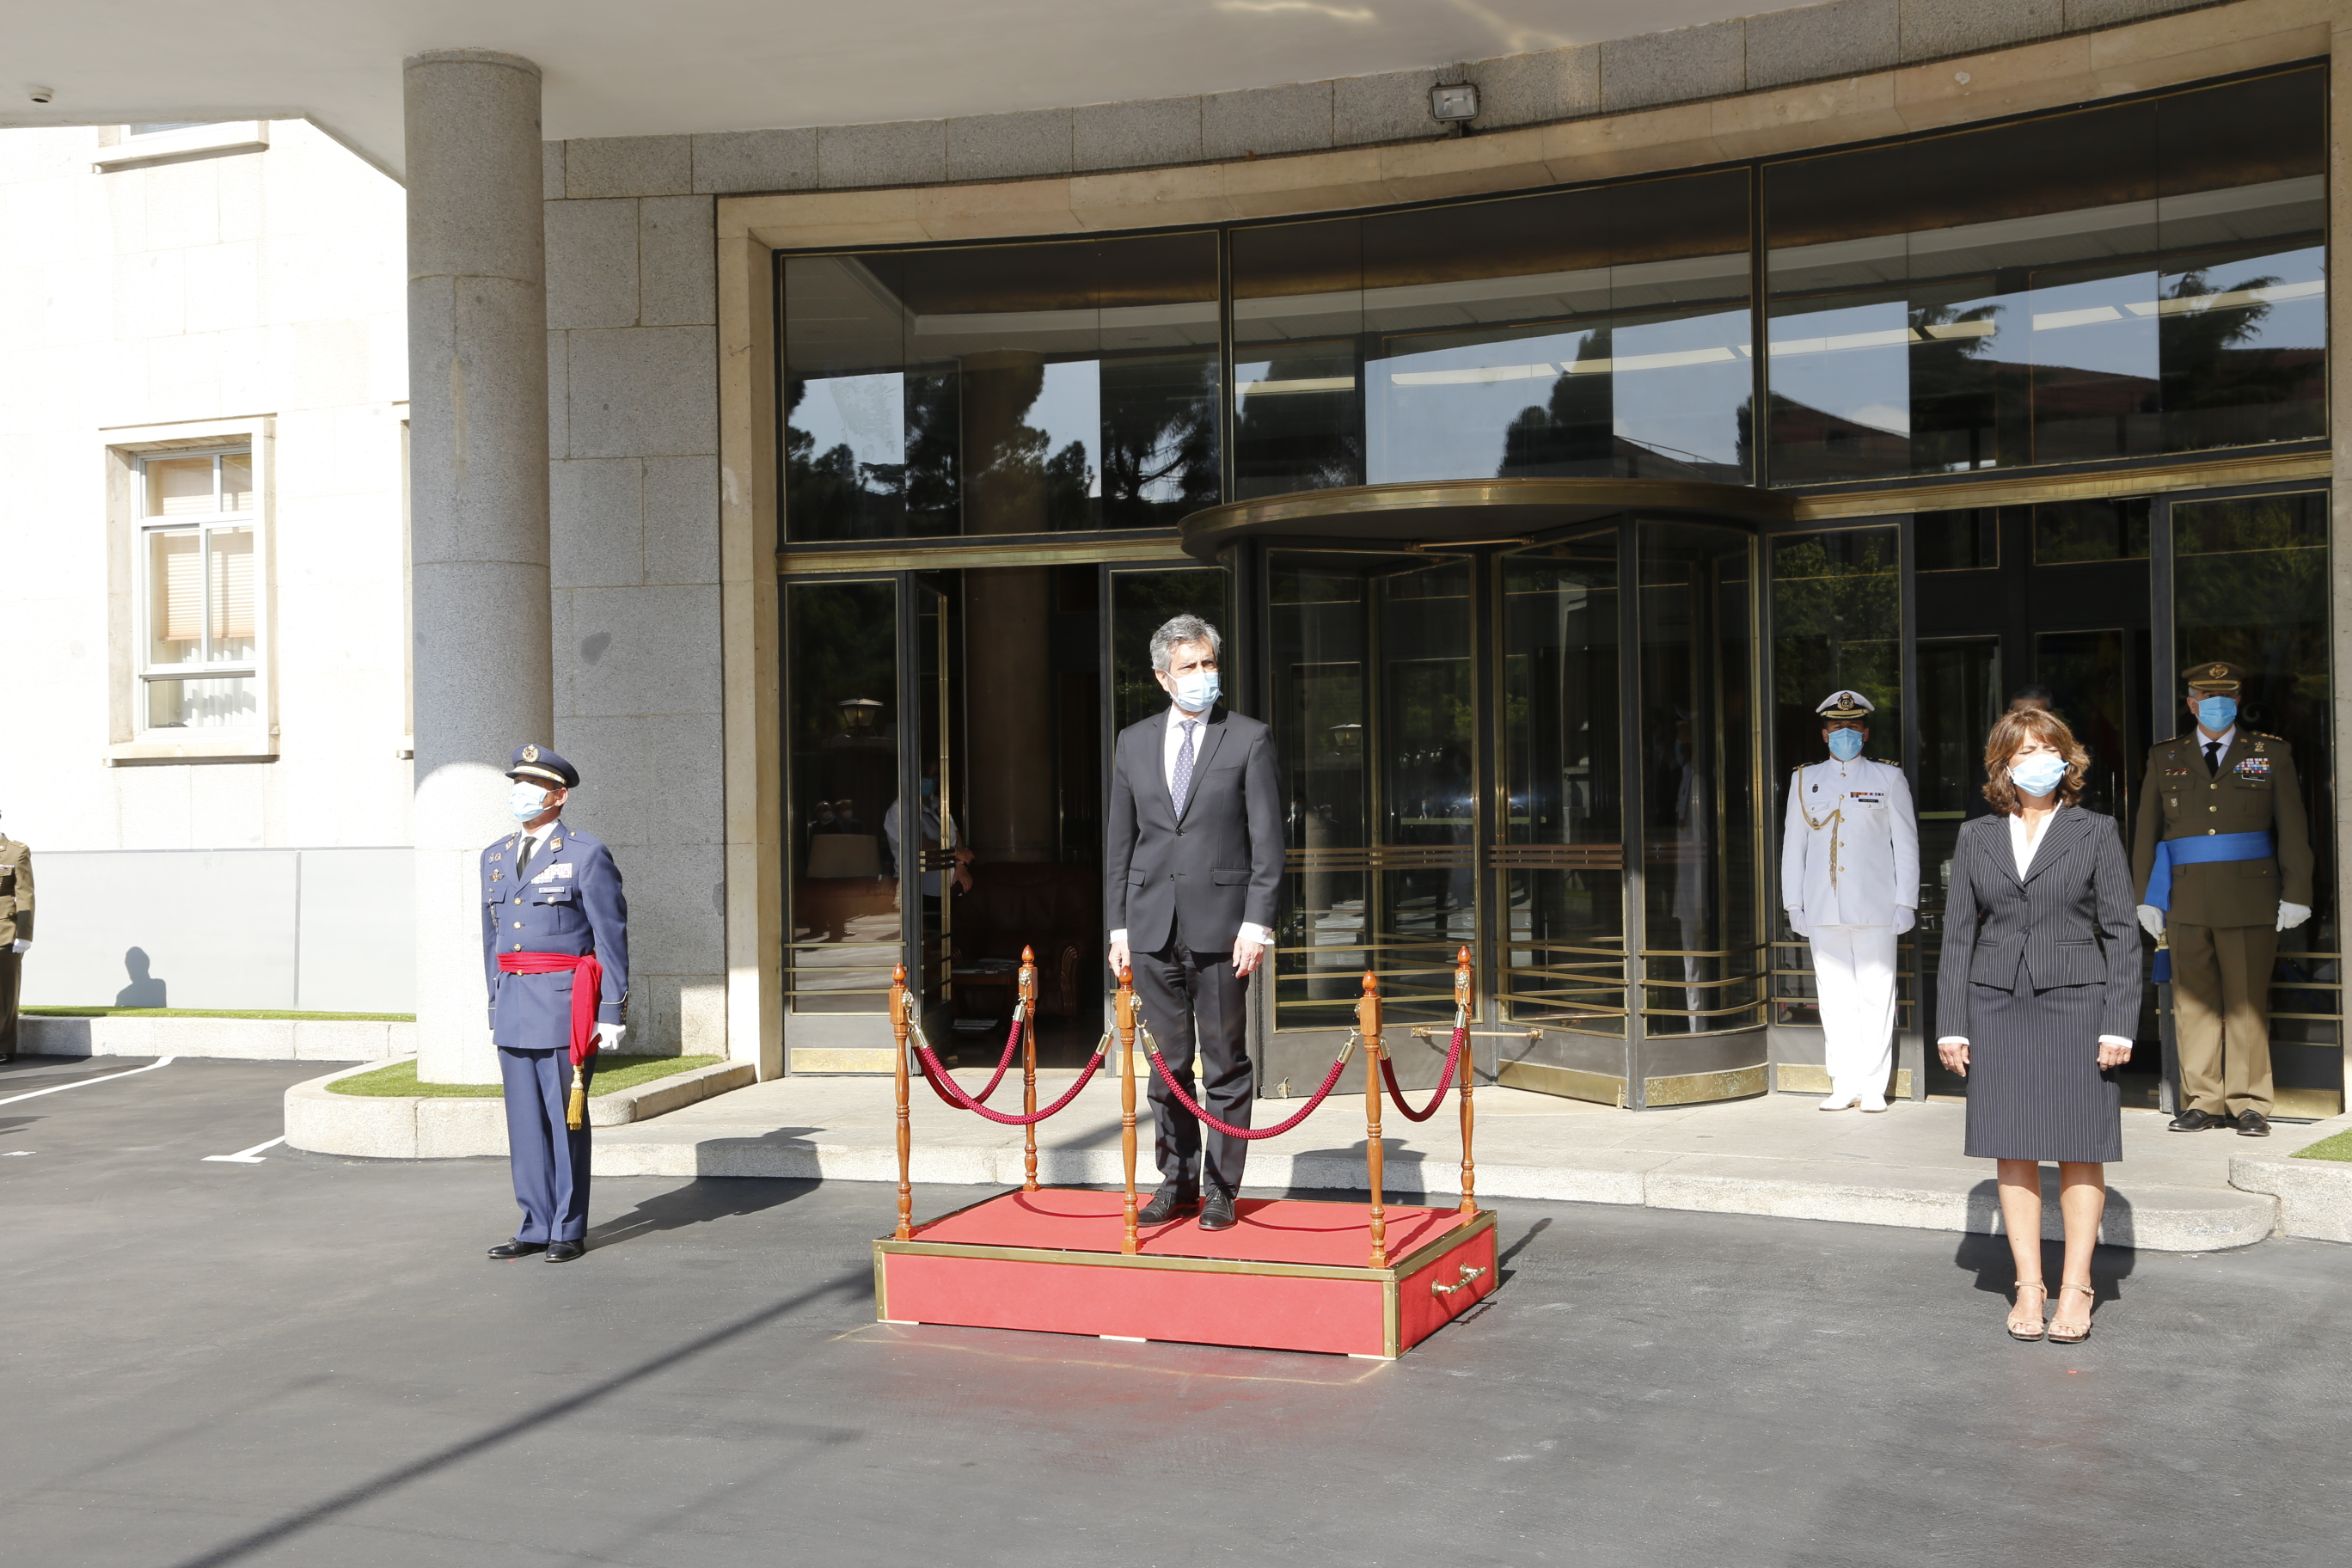 Solemn flag raising ceremony honoring the sixth Anniversary of the Proclamation of H.M. King Felipe VI